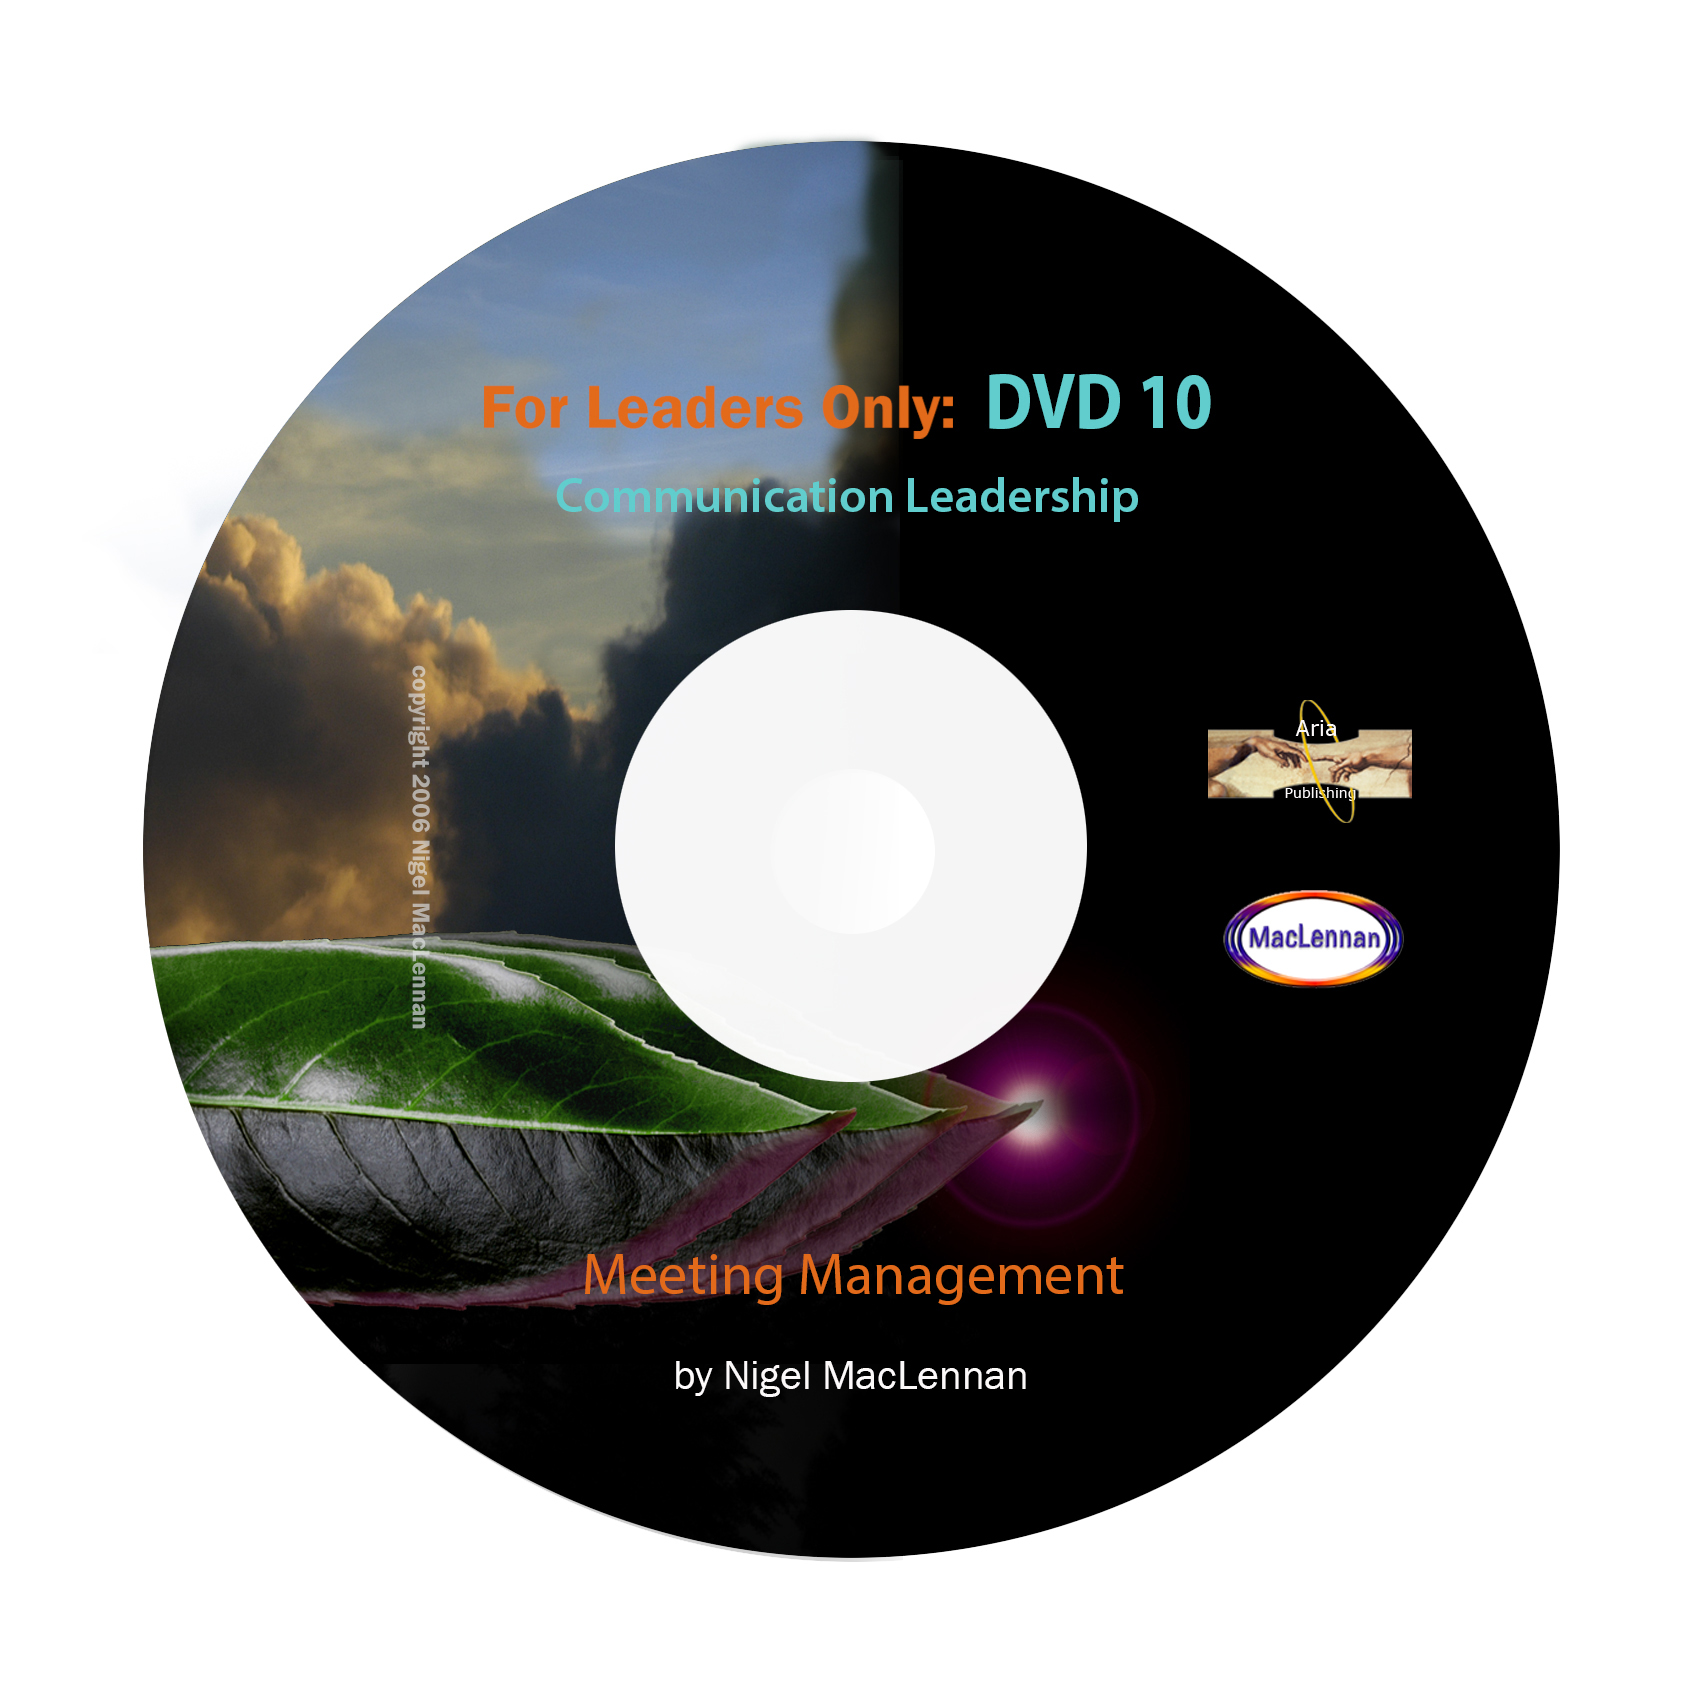 For Leaders Only - Meeting Management DVD